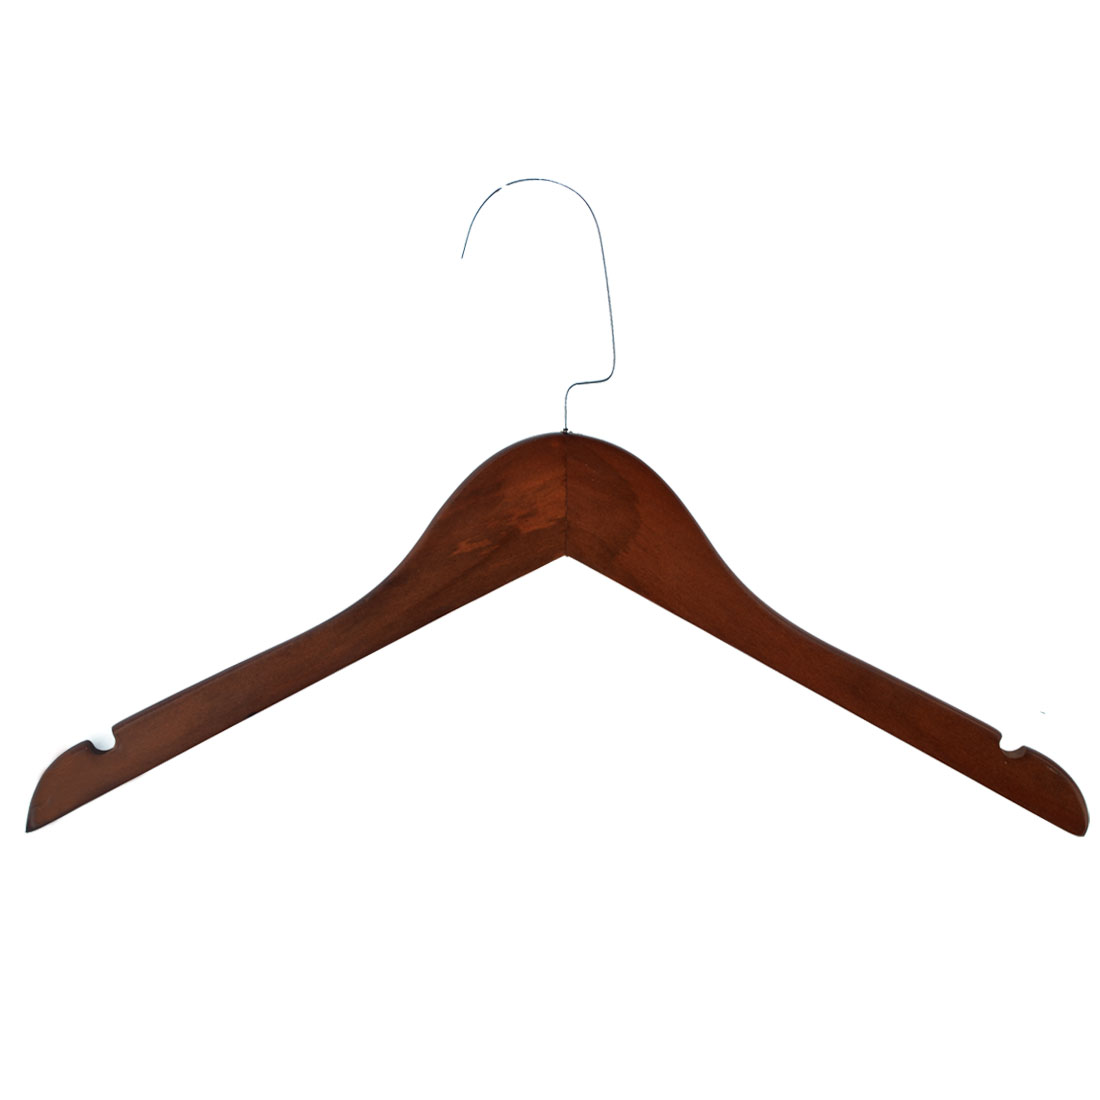 Household Bathroom Wooden Nonslip Suits Pants Clothes Clothing Hanger Hook Wooden Color